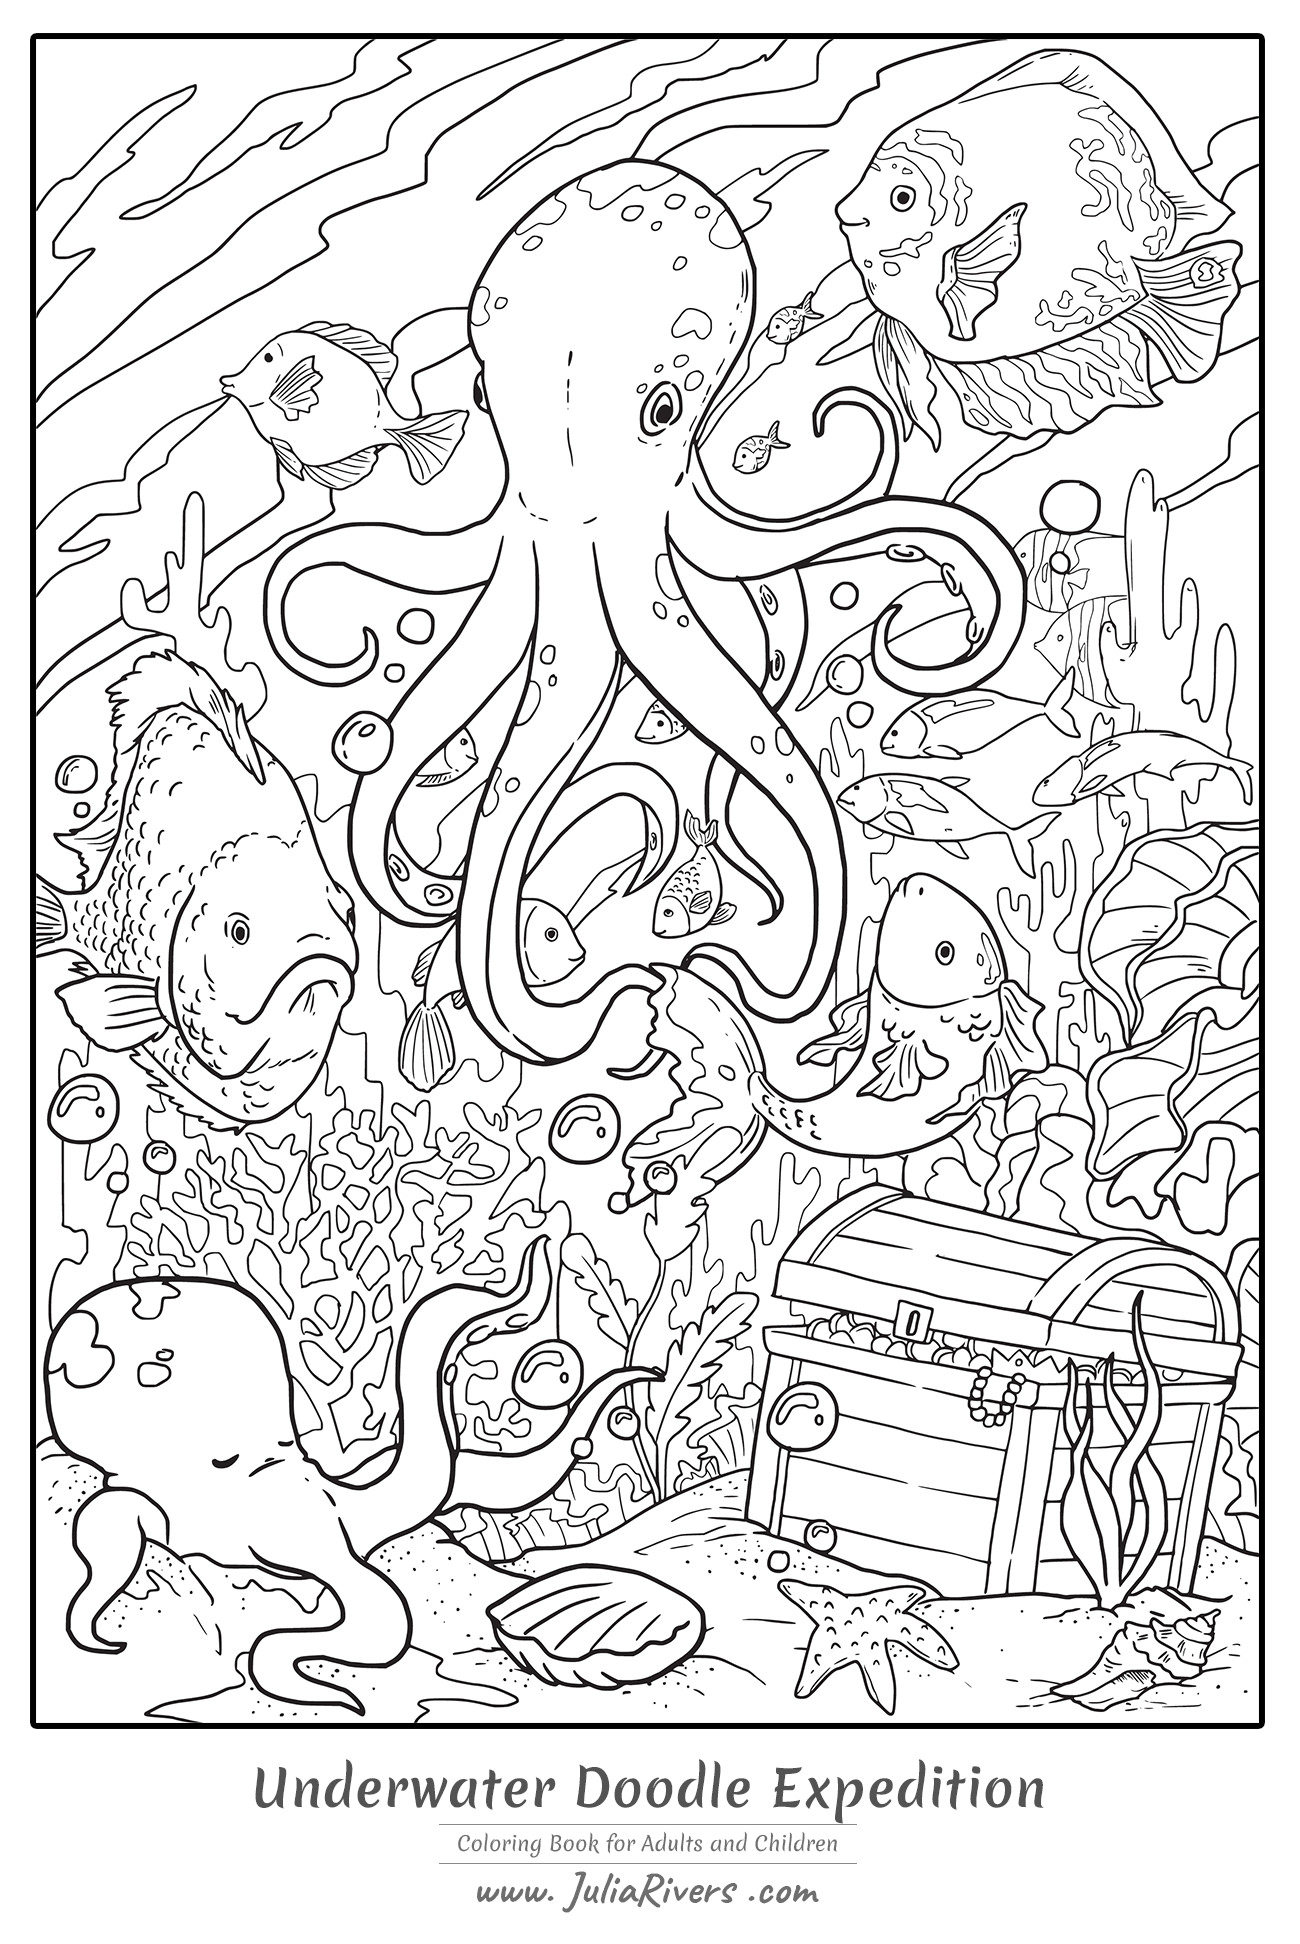 Underwater Doodle Expedition Magnificent Coloring Page Representing A Giant Octopus At The Bottom Of Sea With Fishes Coral And Mysterious